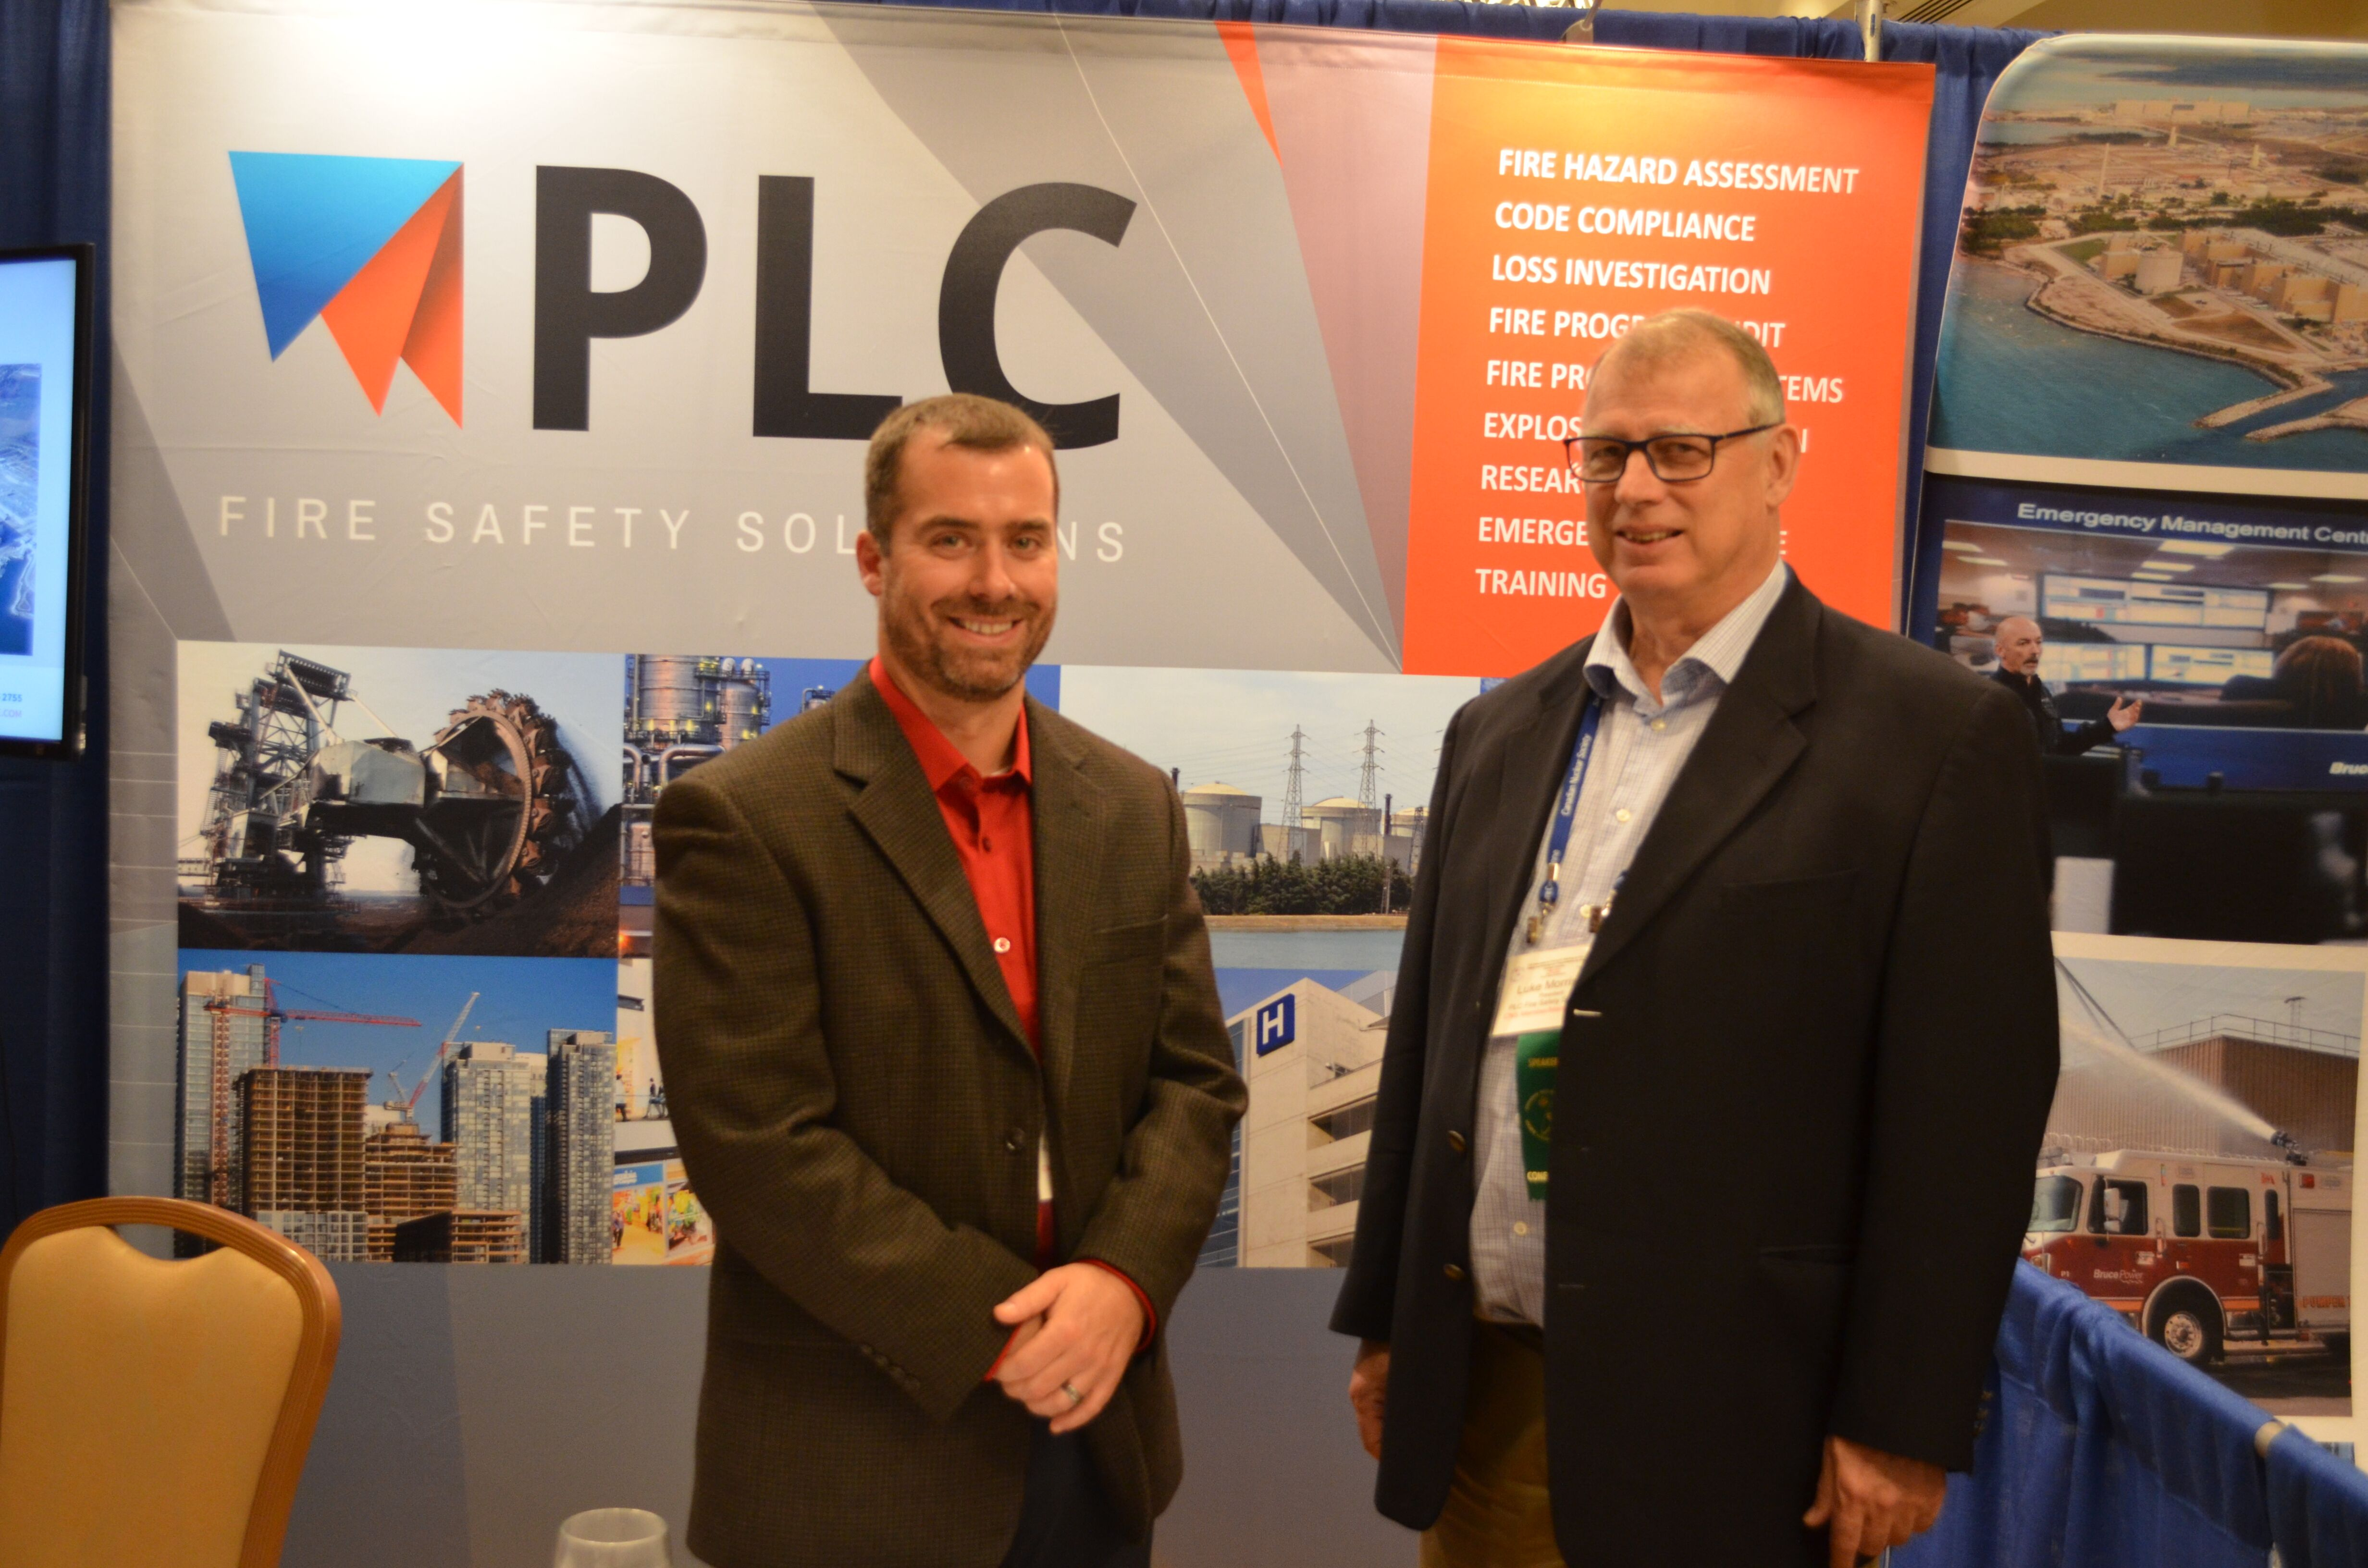 PLC Exhibitor Booth  at FSEP Sept 2017